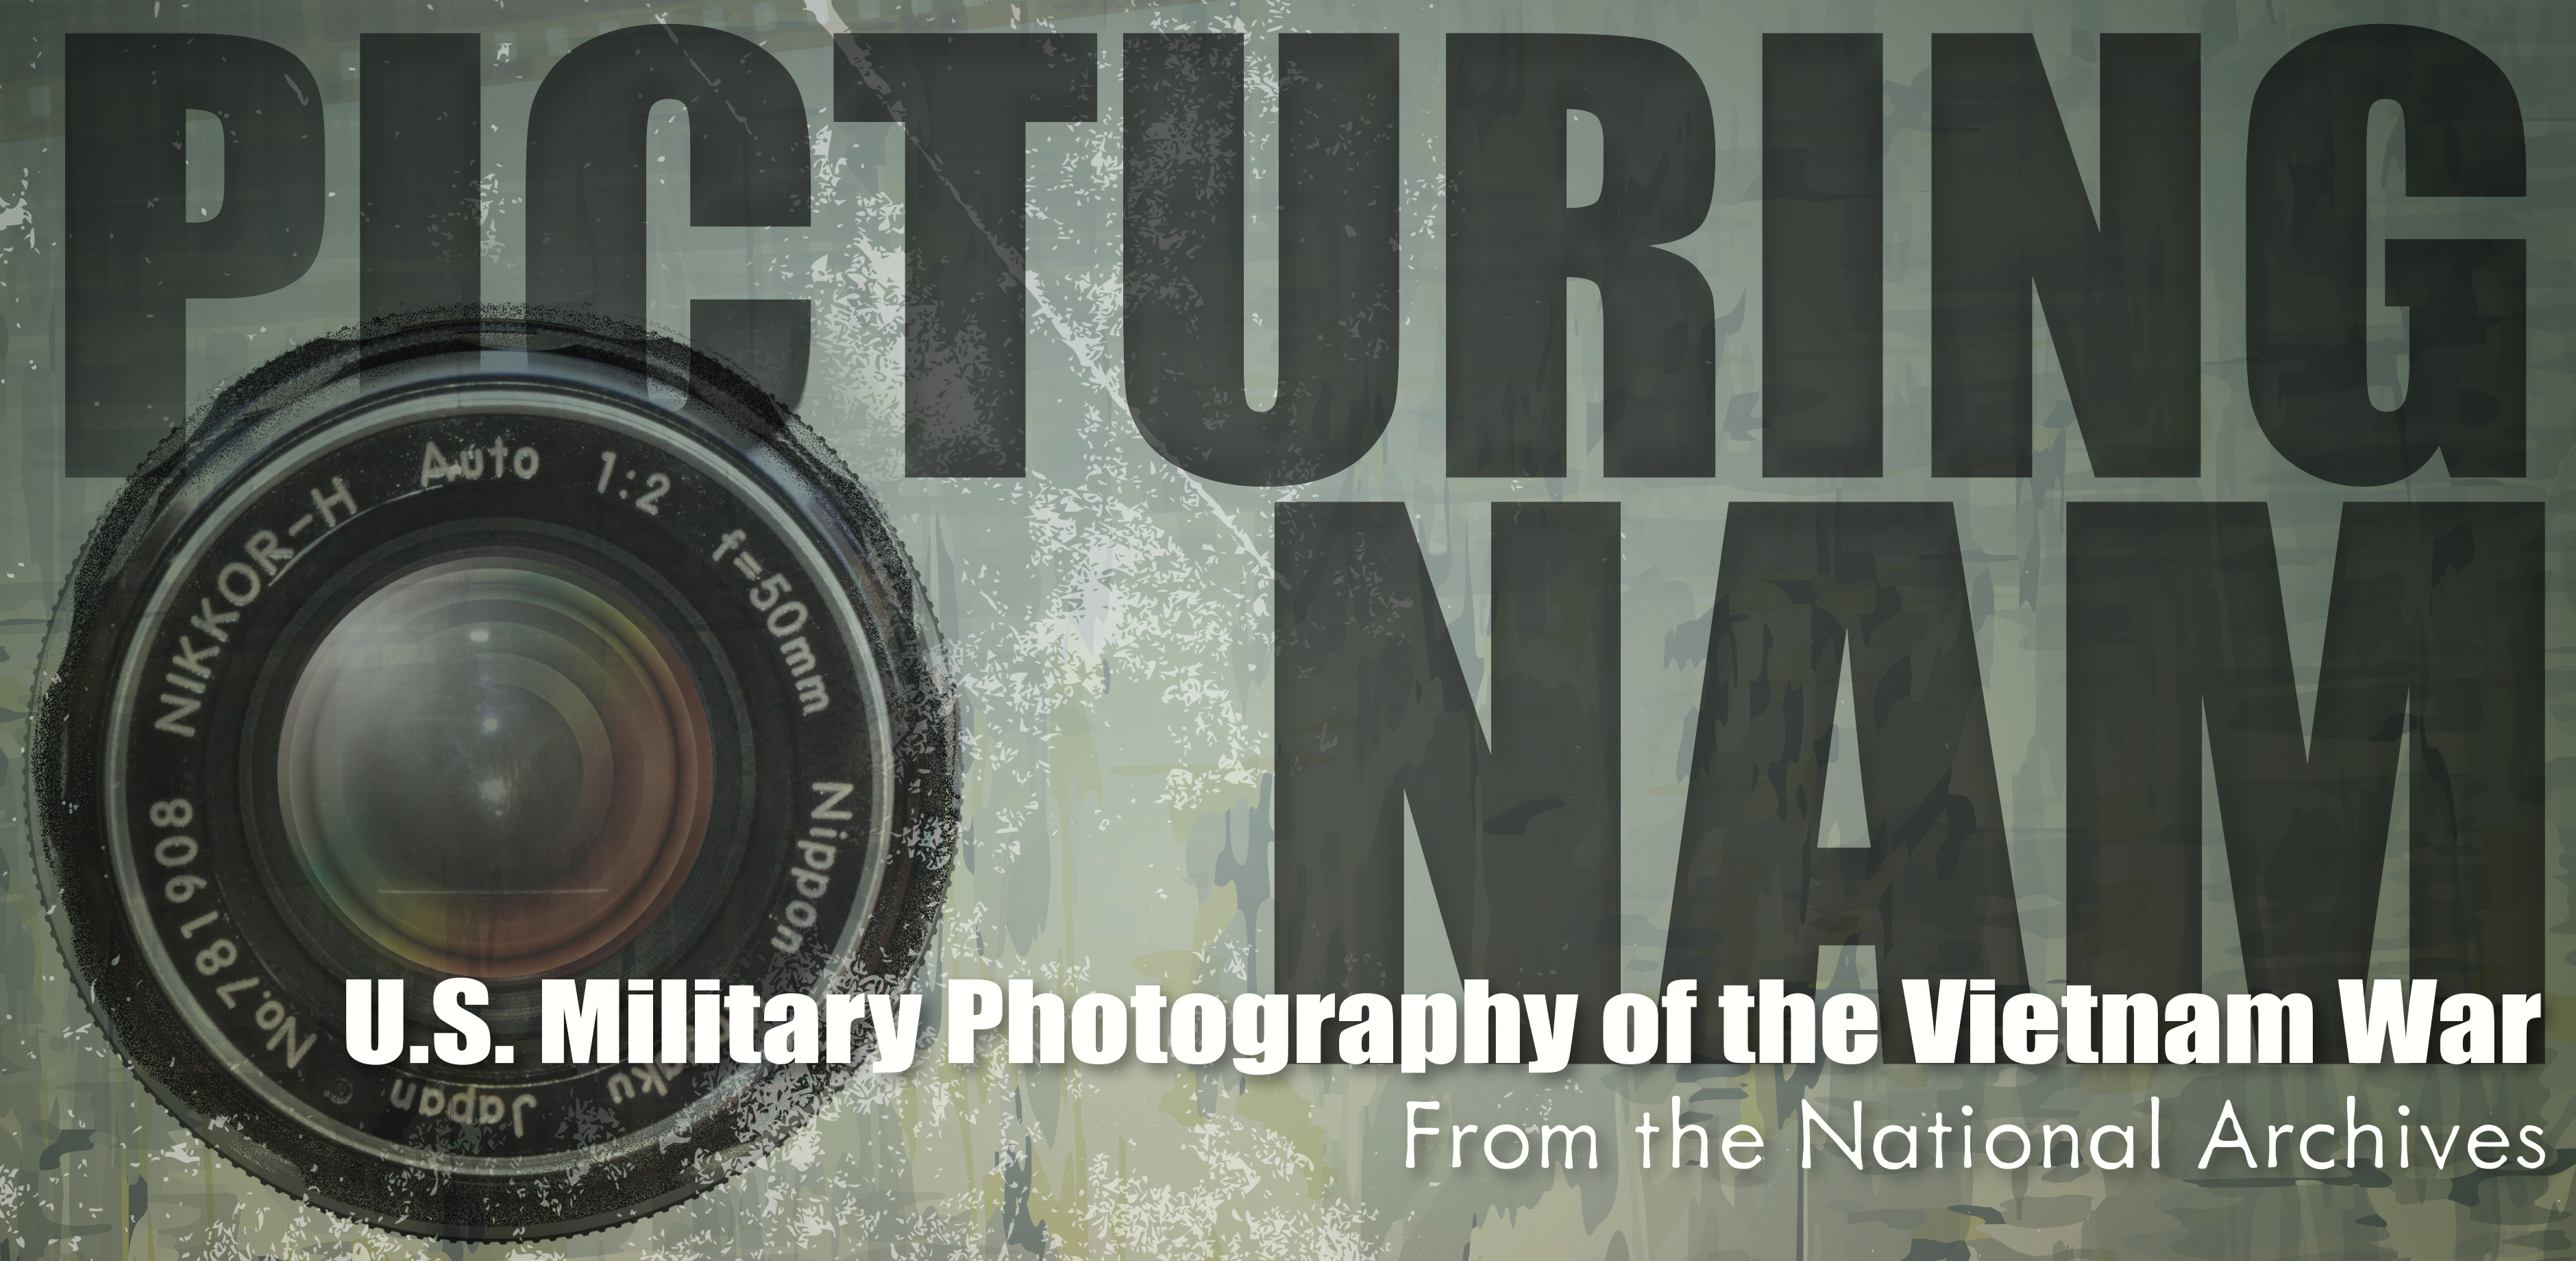 Picturing Nam Exhibit Logo